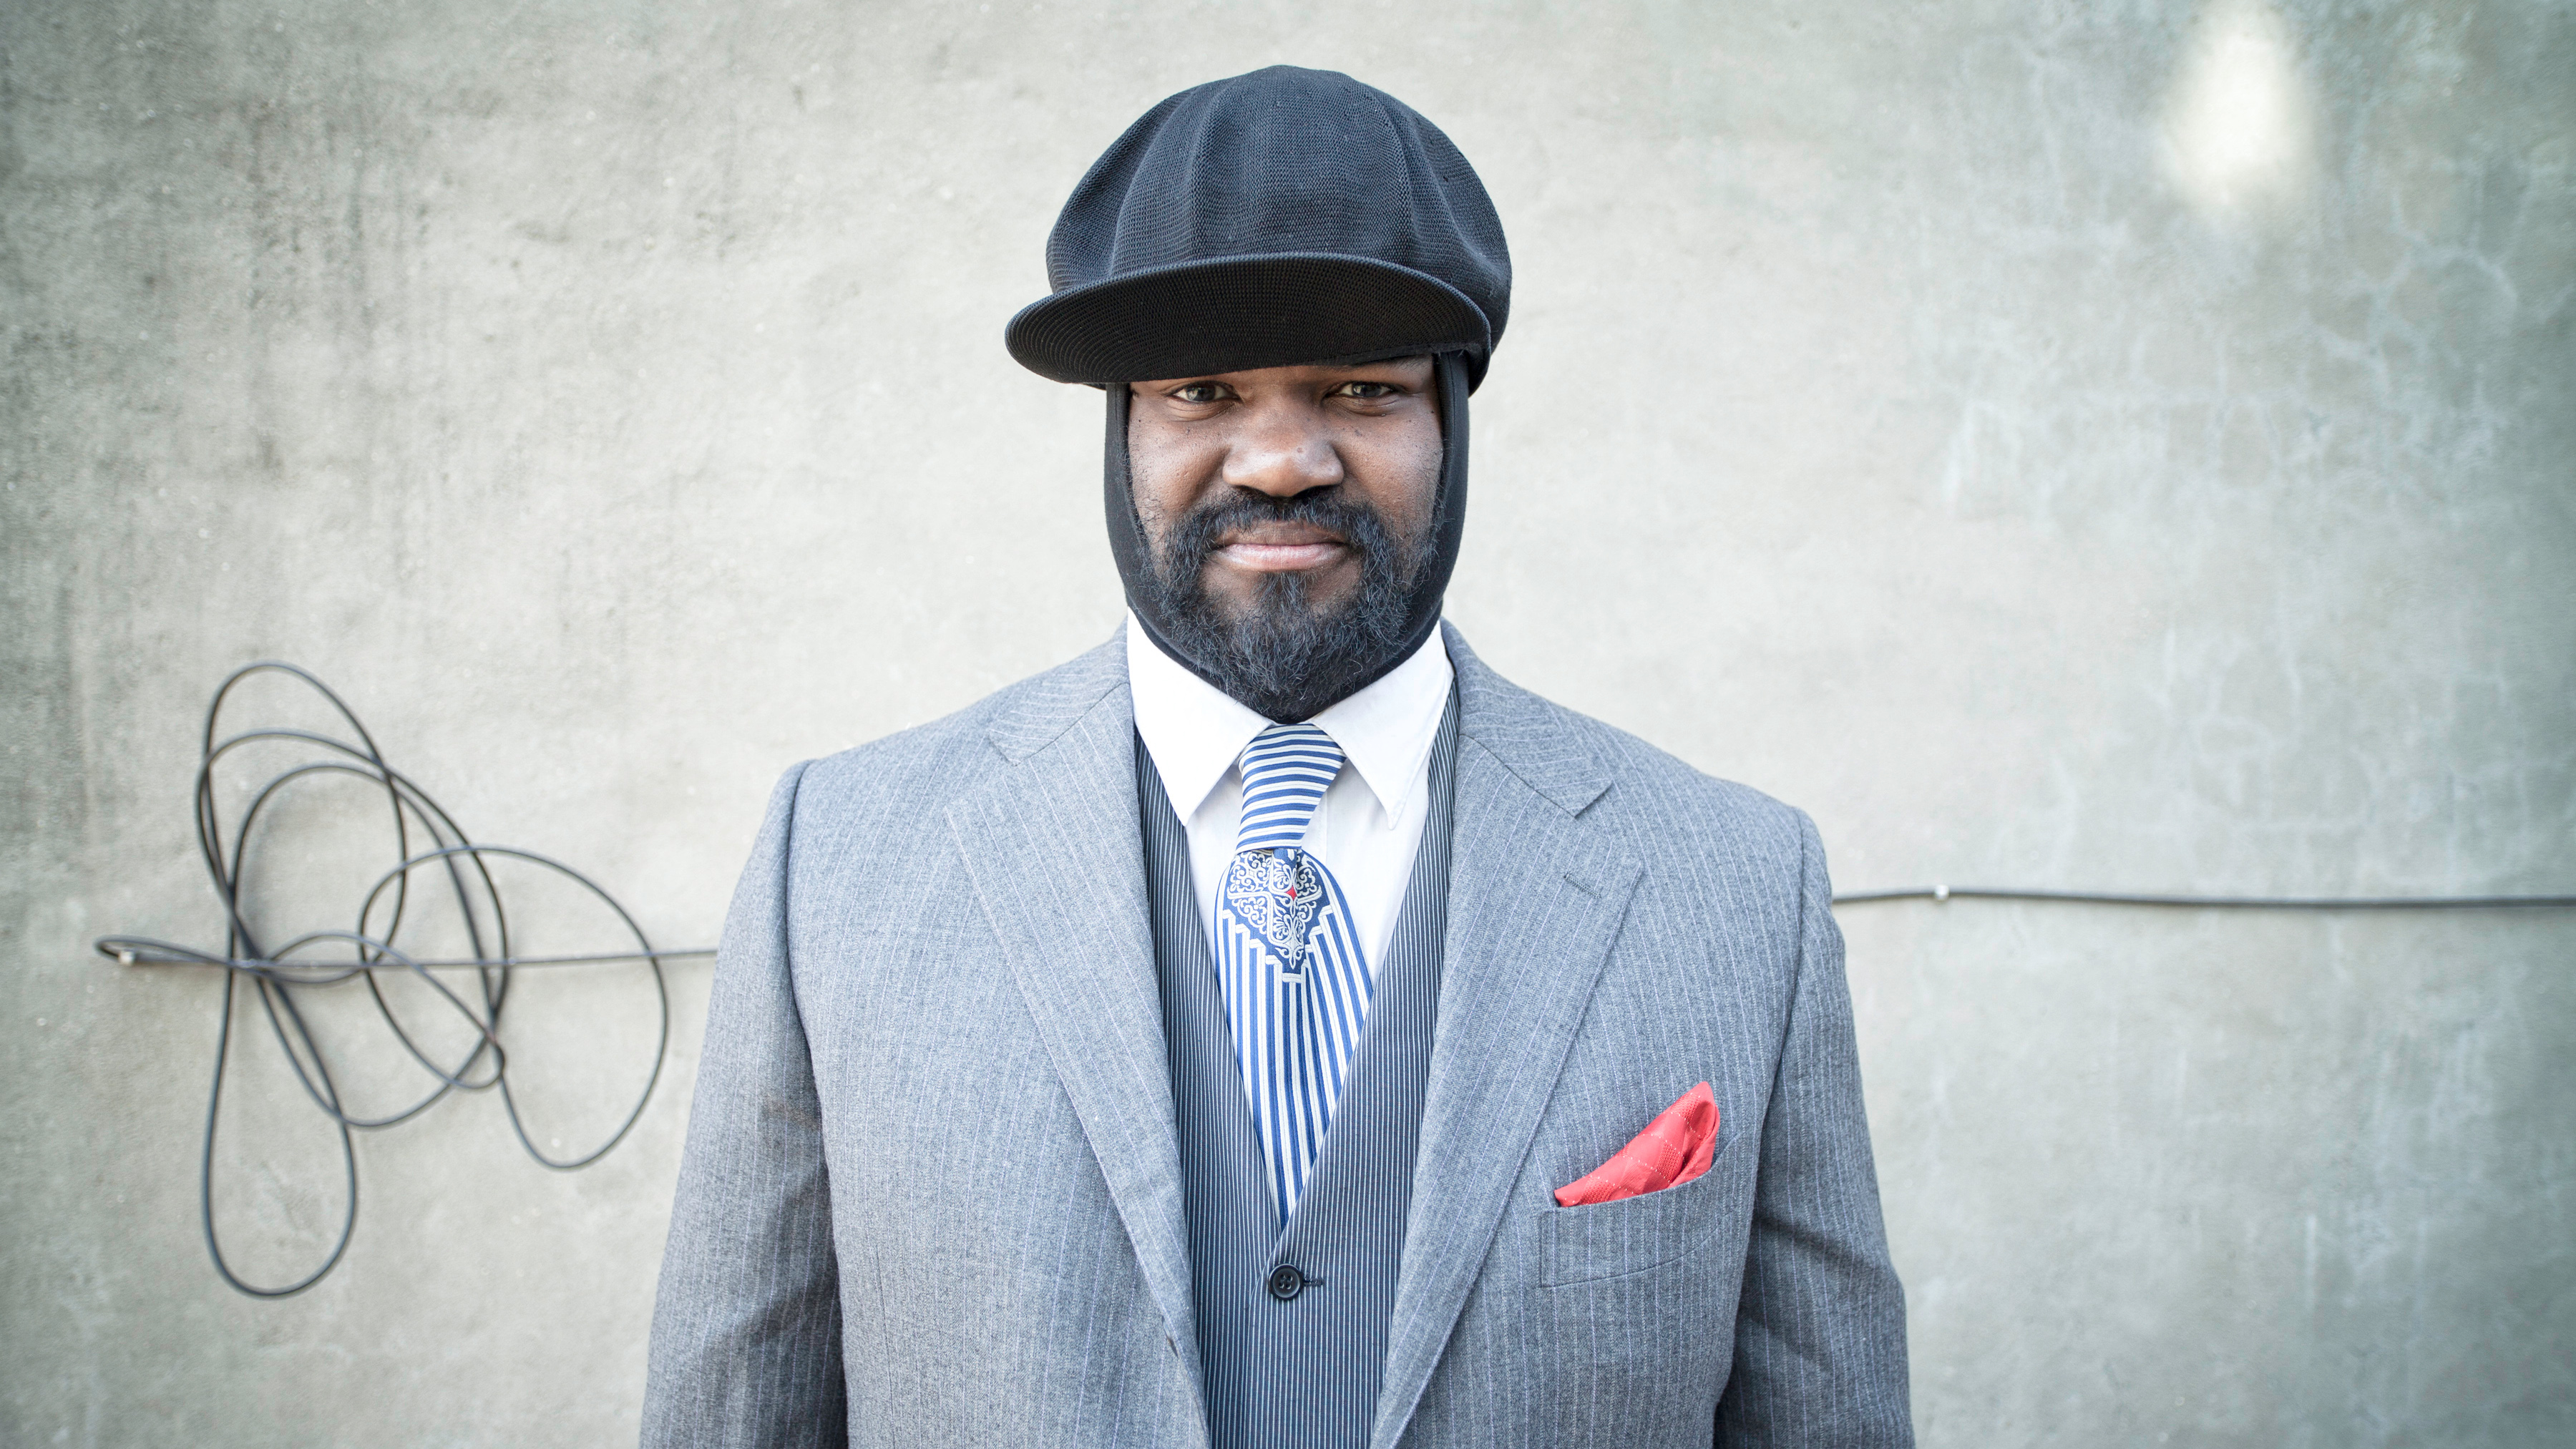 Gregory Porter, press photo 2012, 01 (3600x2025)